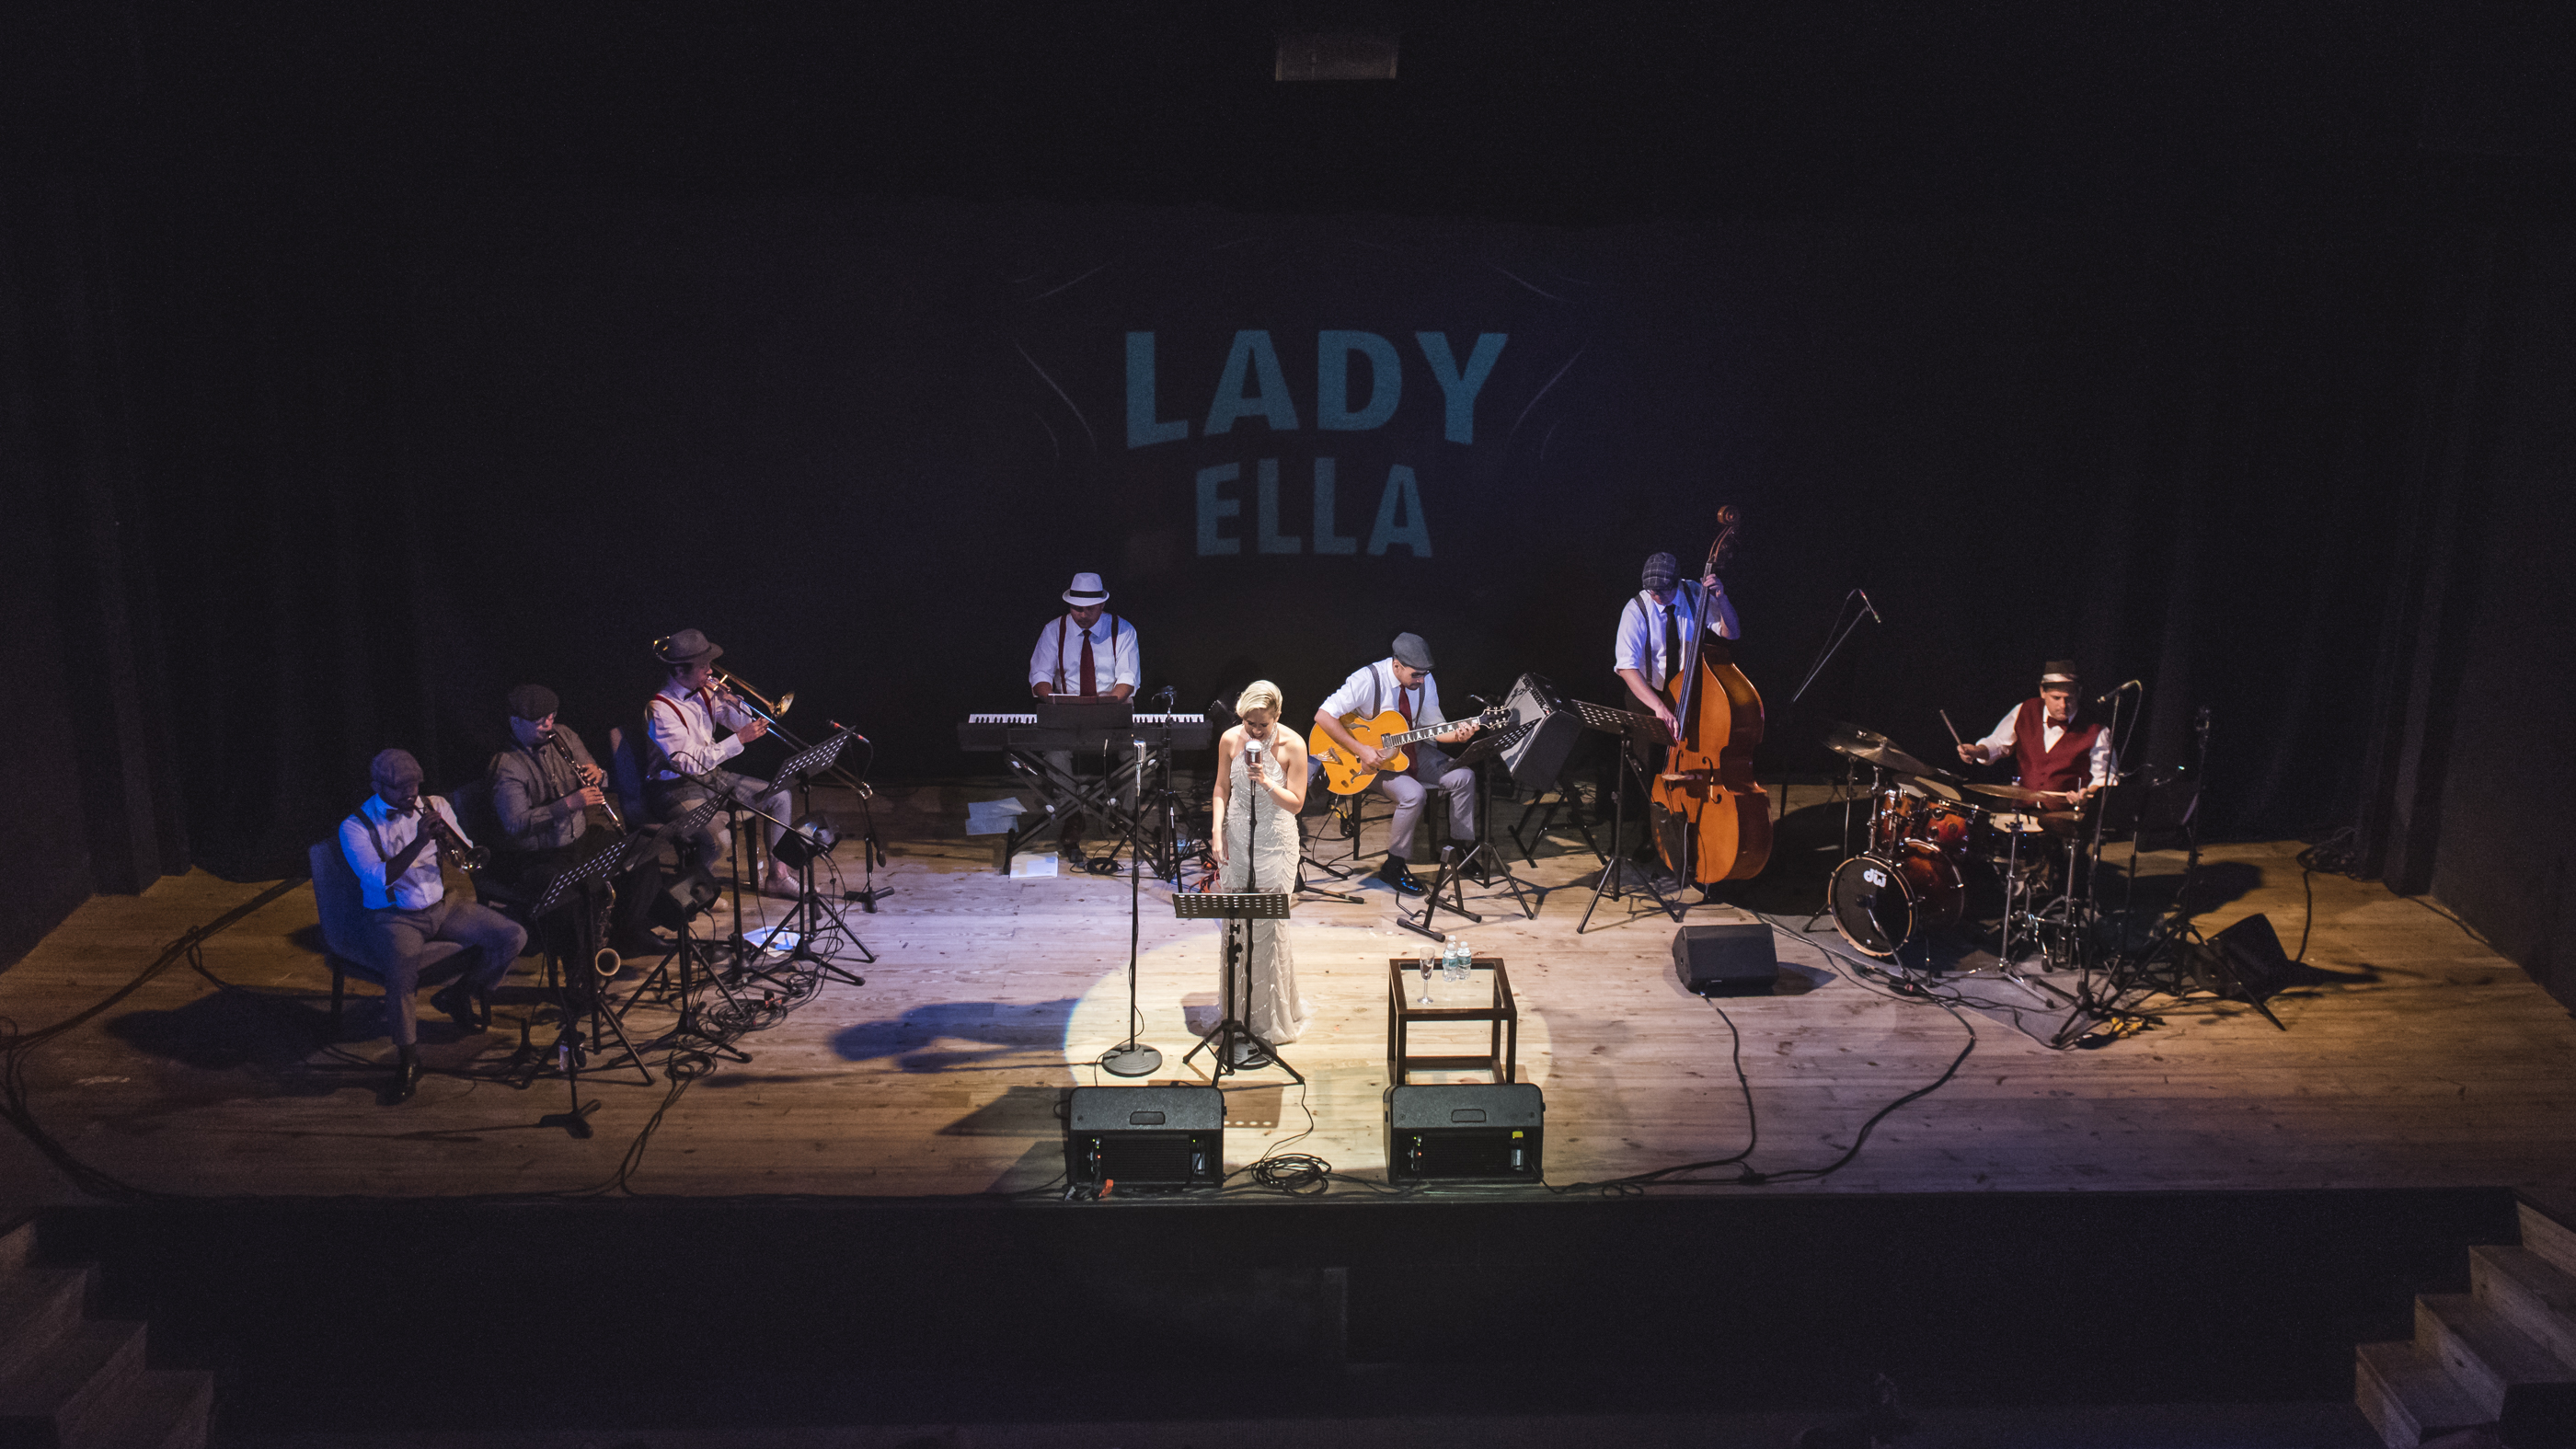 MM_LADY ELLA_POR LUIS CANTILLO-57